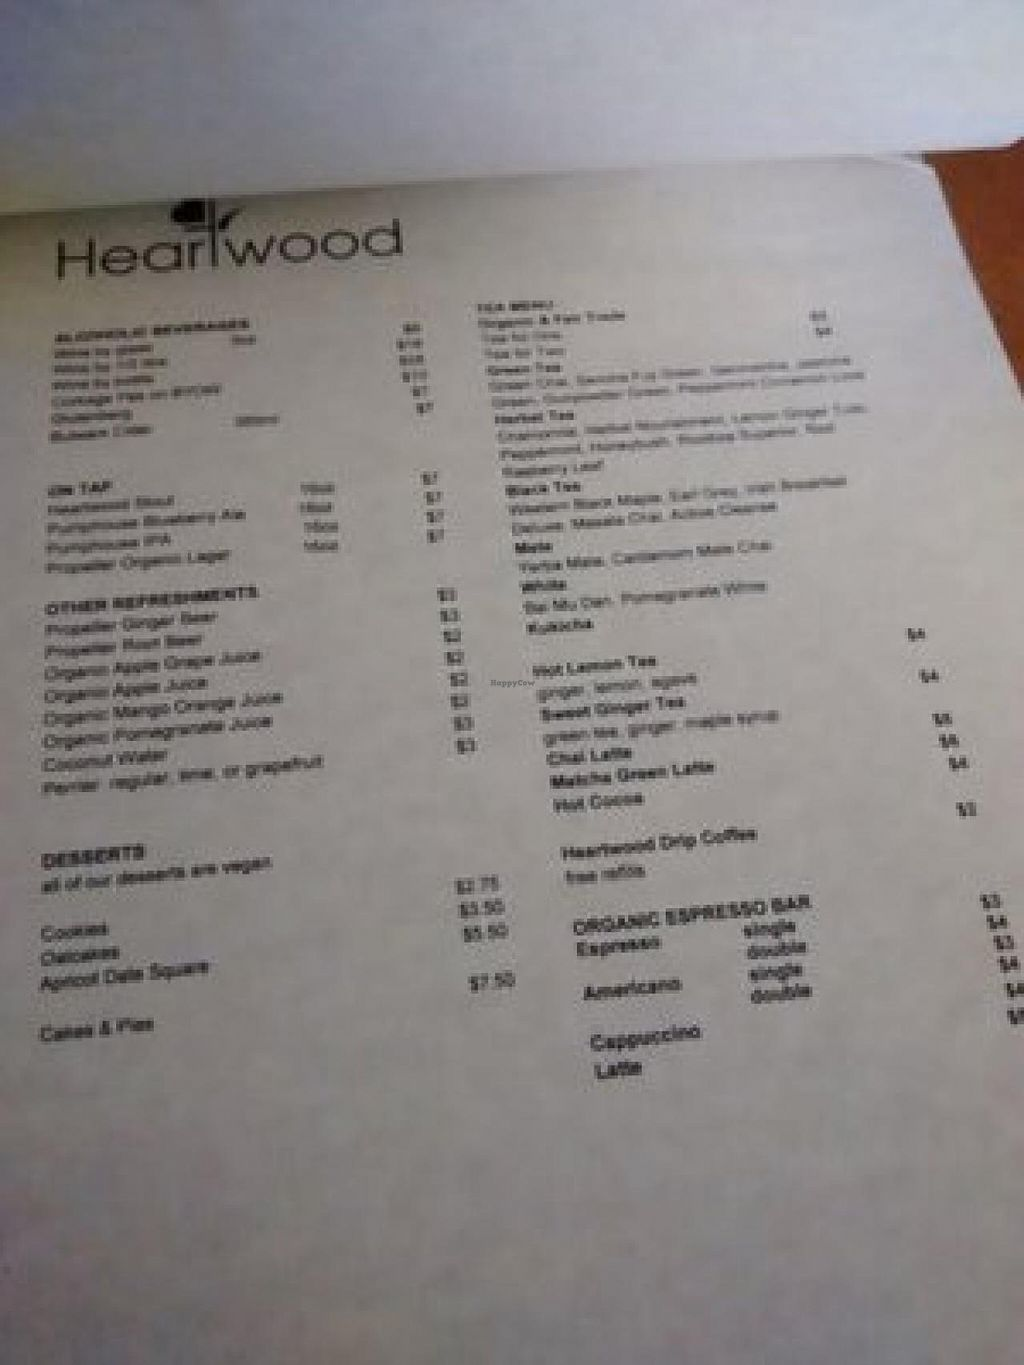 """Photo of Heartwood Bakery & Cafe - Quinpool Rd  by <a href=""""/members/profile/QuothTheRaven"""">QuothTheRaven</a> <br/>Menu 3 <br/> July 24, 2015  - <a href='/contact/abuse/image/1294/110814'>Report</a>"""